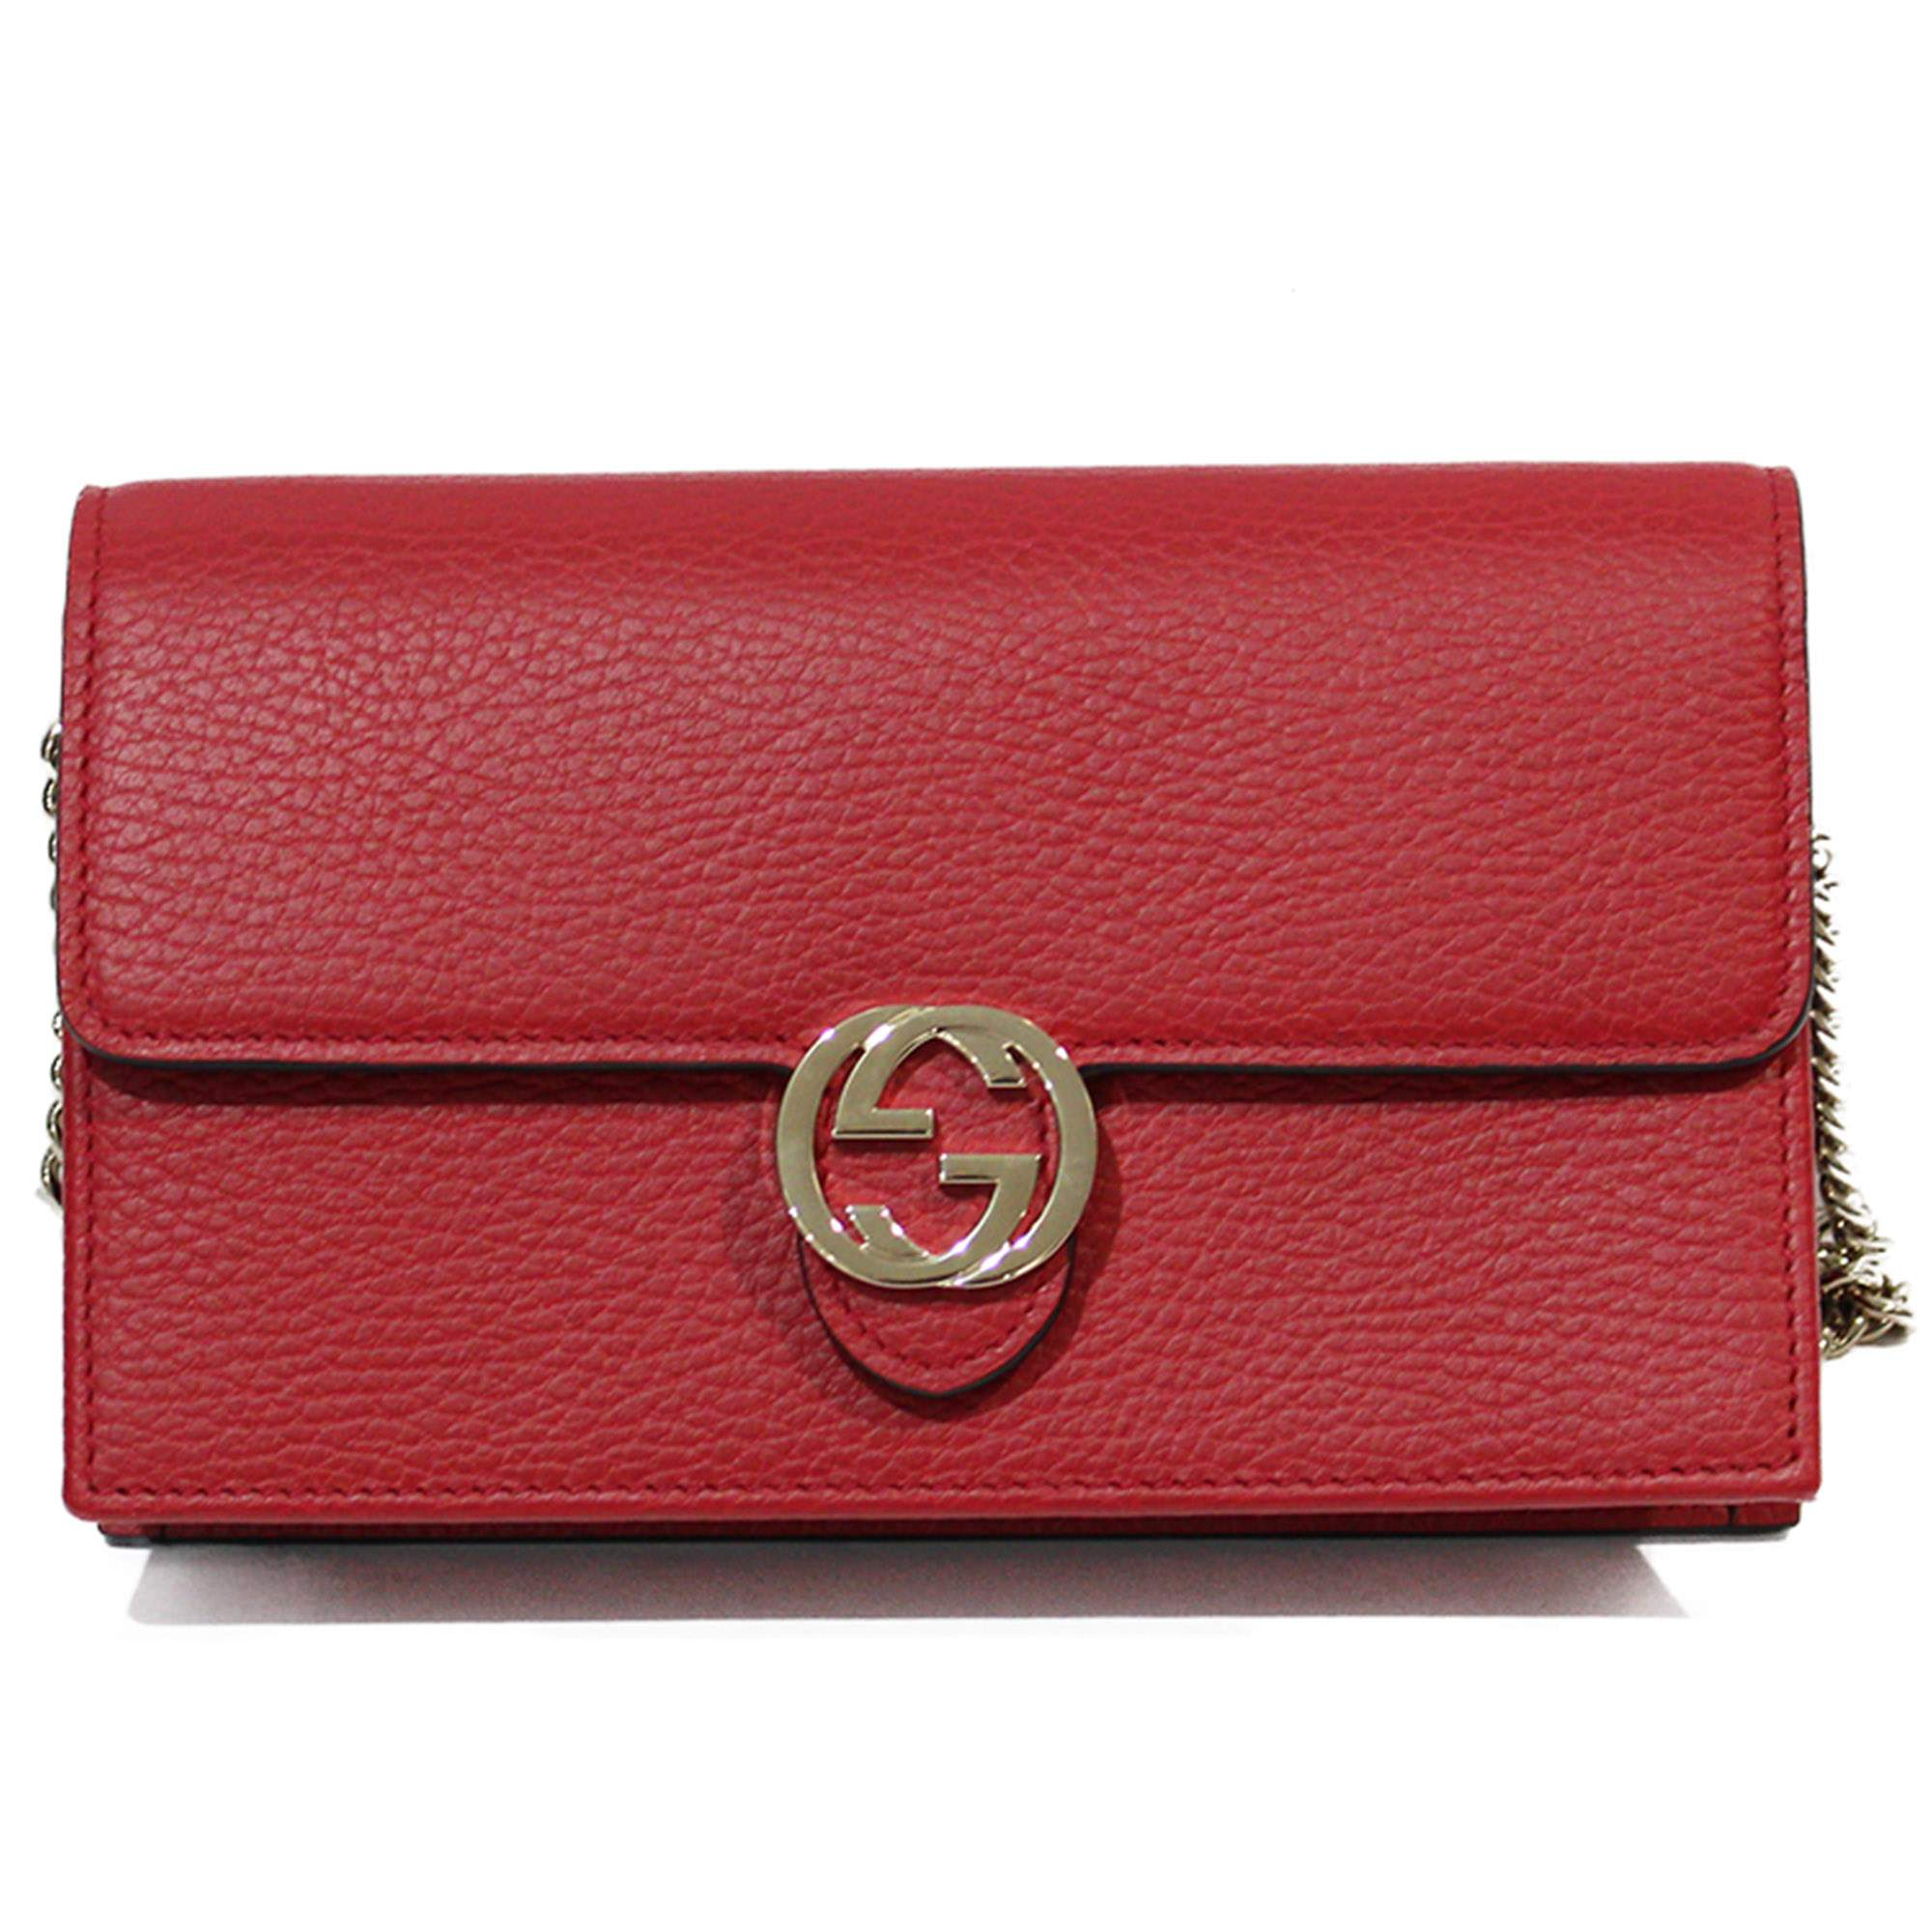 50a057b9b38a74 Gucci New Chain Wallet   The Chic Selection